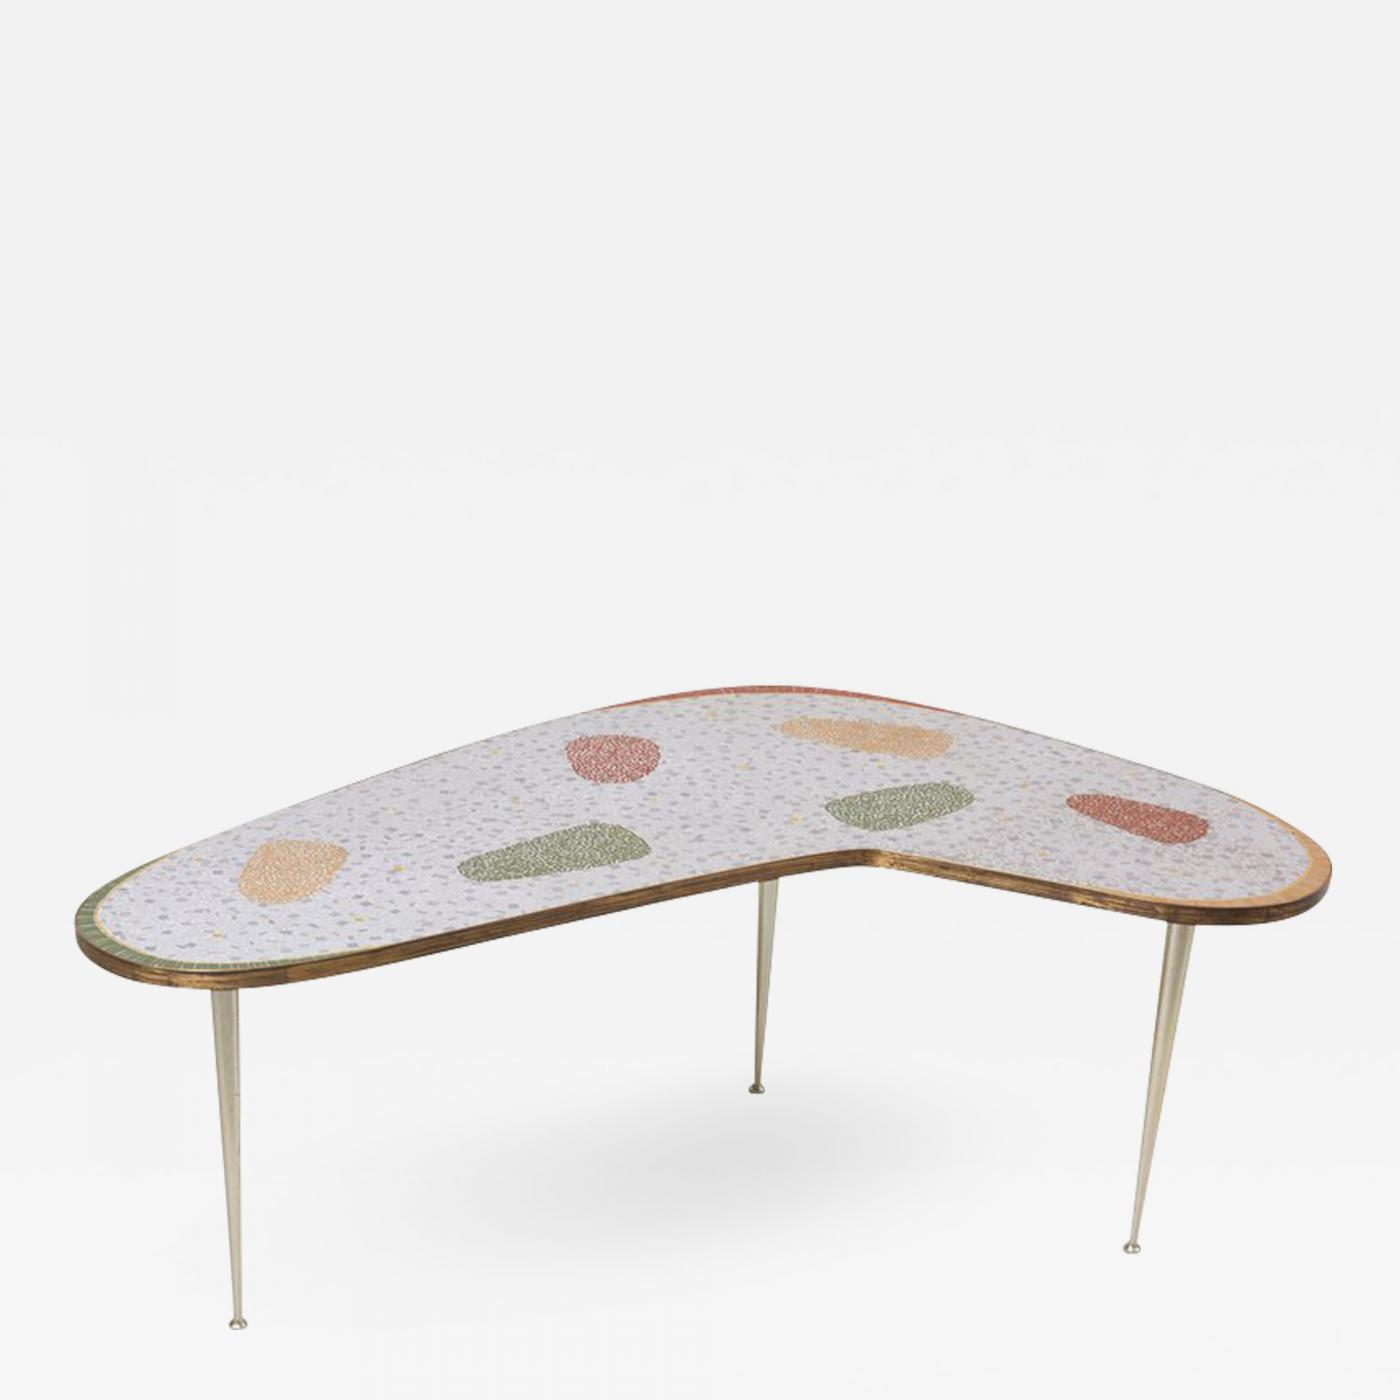 - Berthold Muller - Vintage Boomerang Coffee Table By Berthold Müller